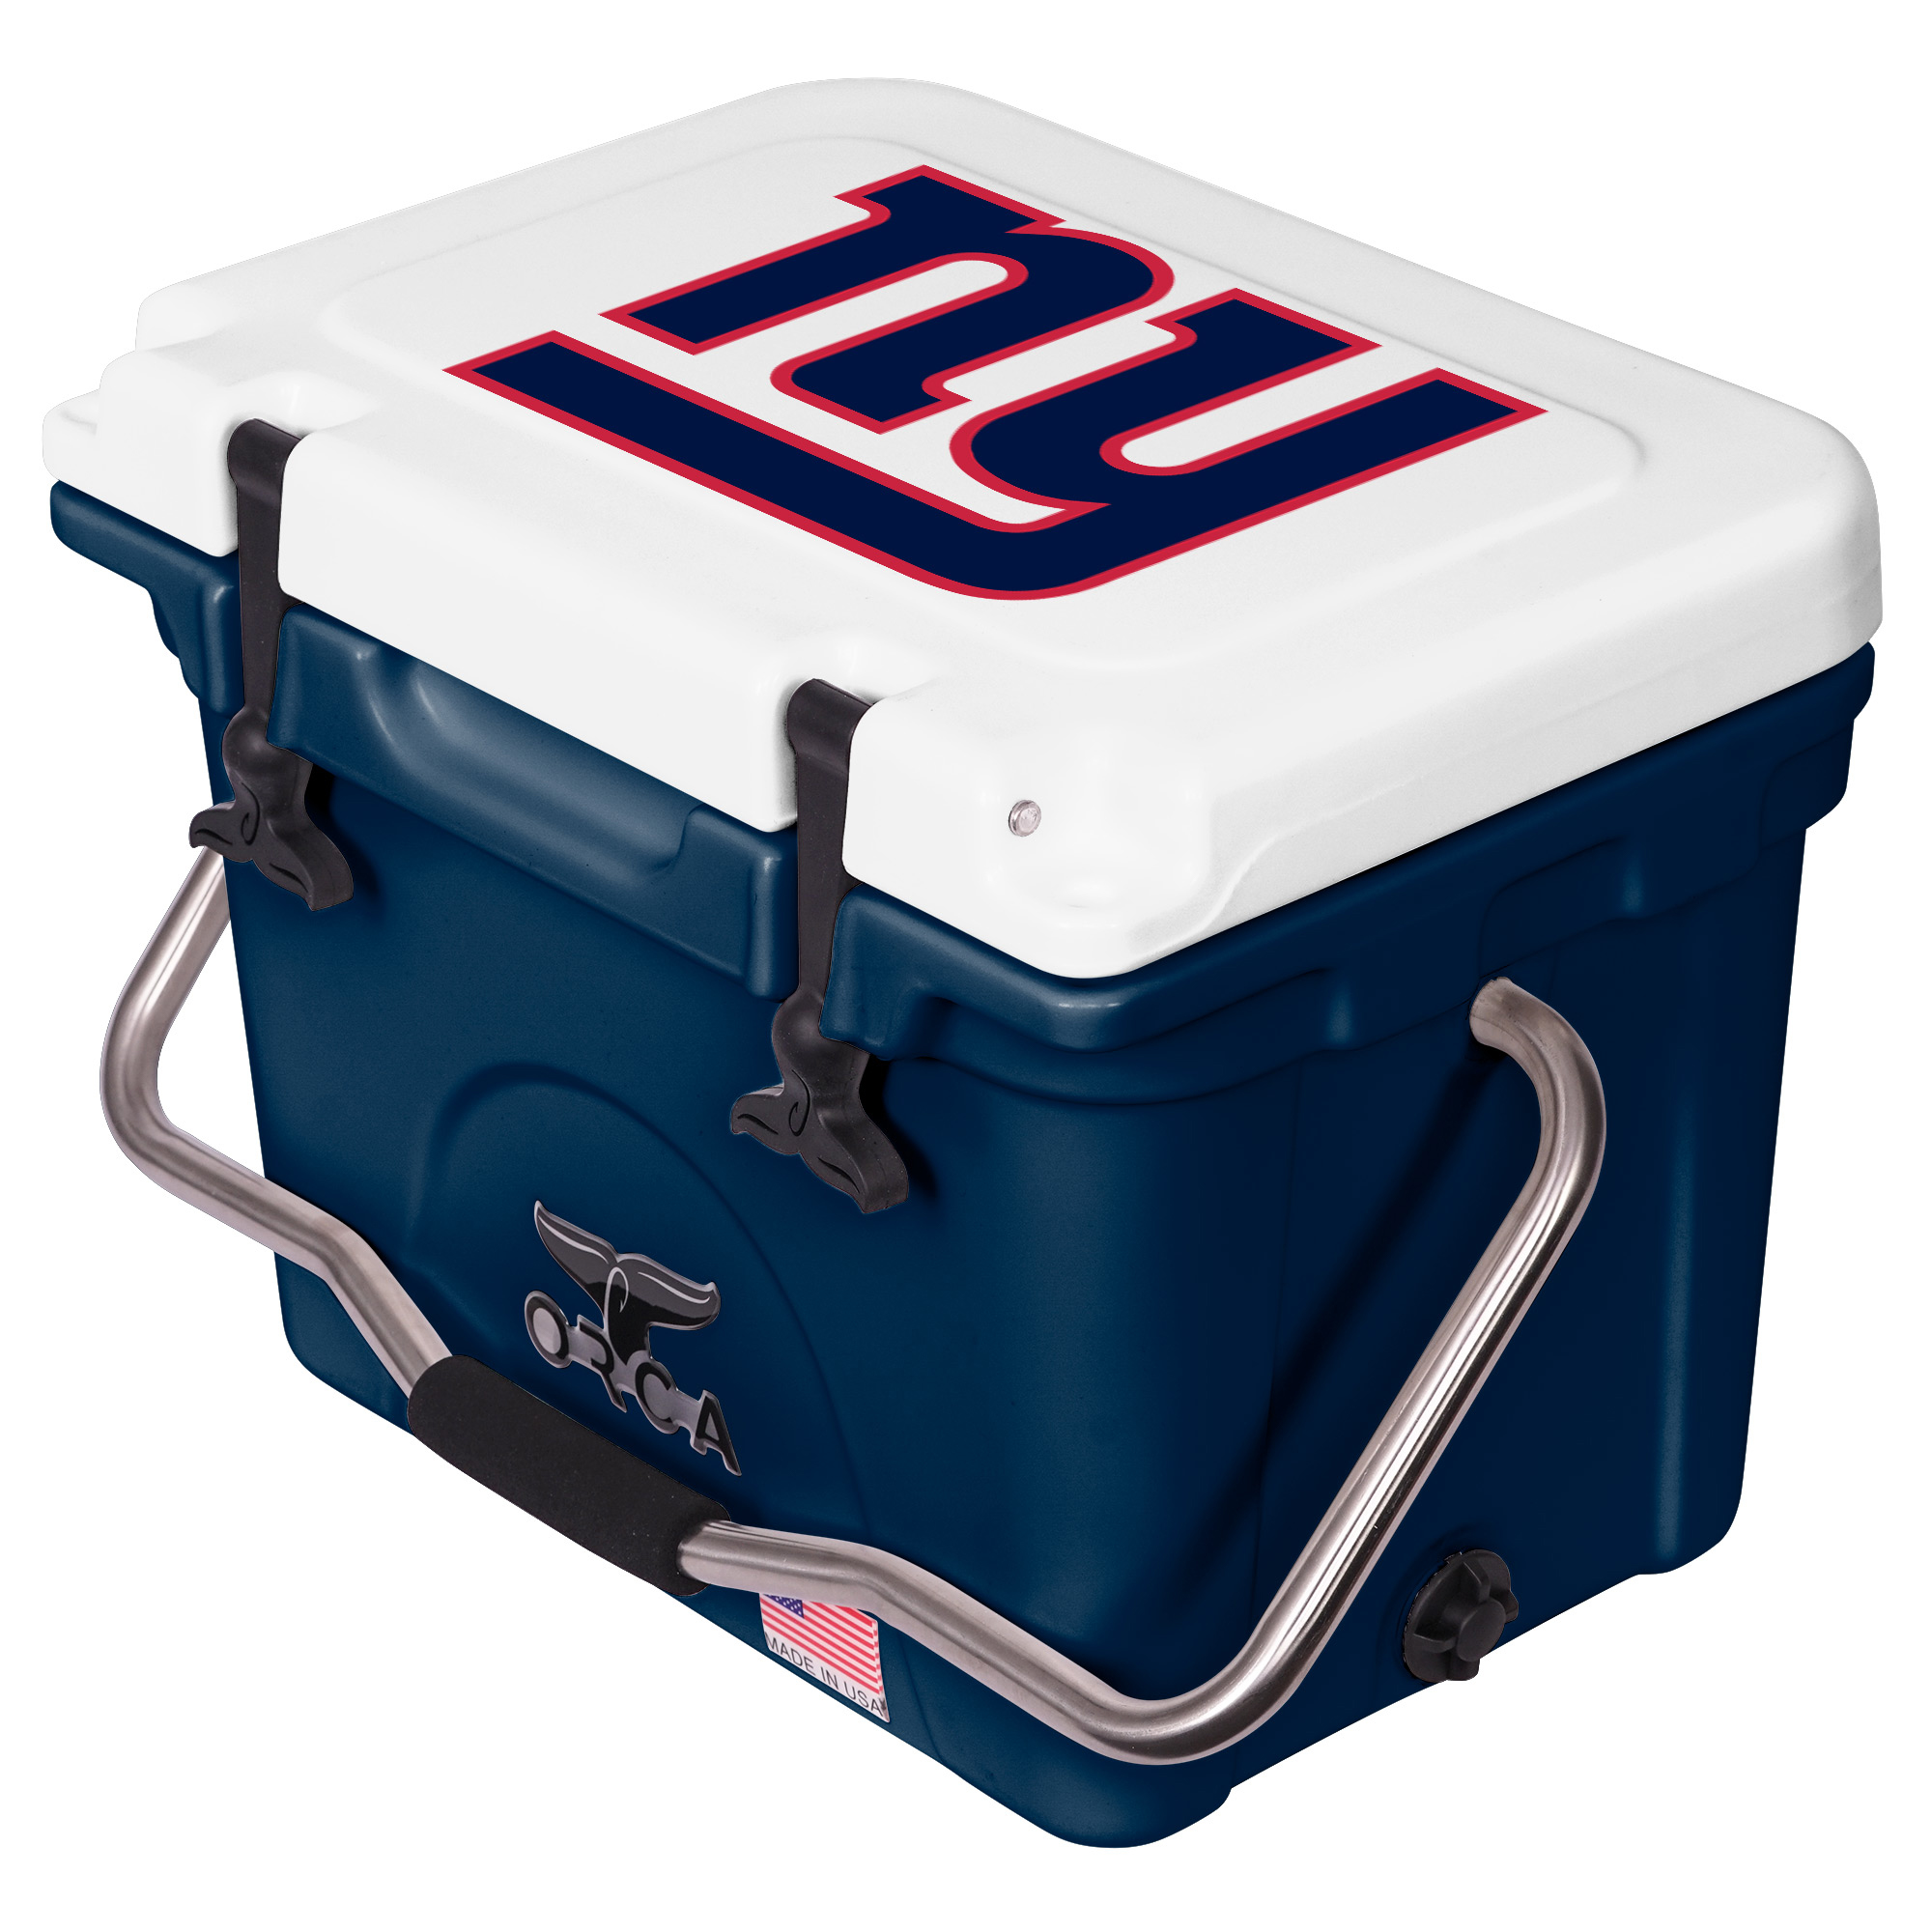 New York Giants ORCA 20-Quart Hard-Sided Cooler - Blue/White - No Size